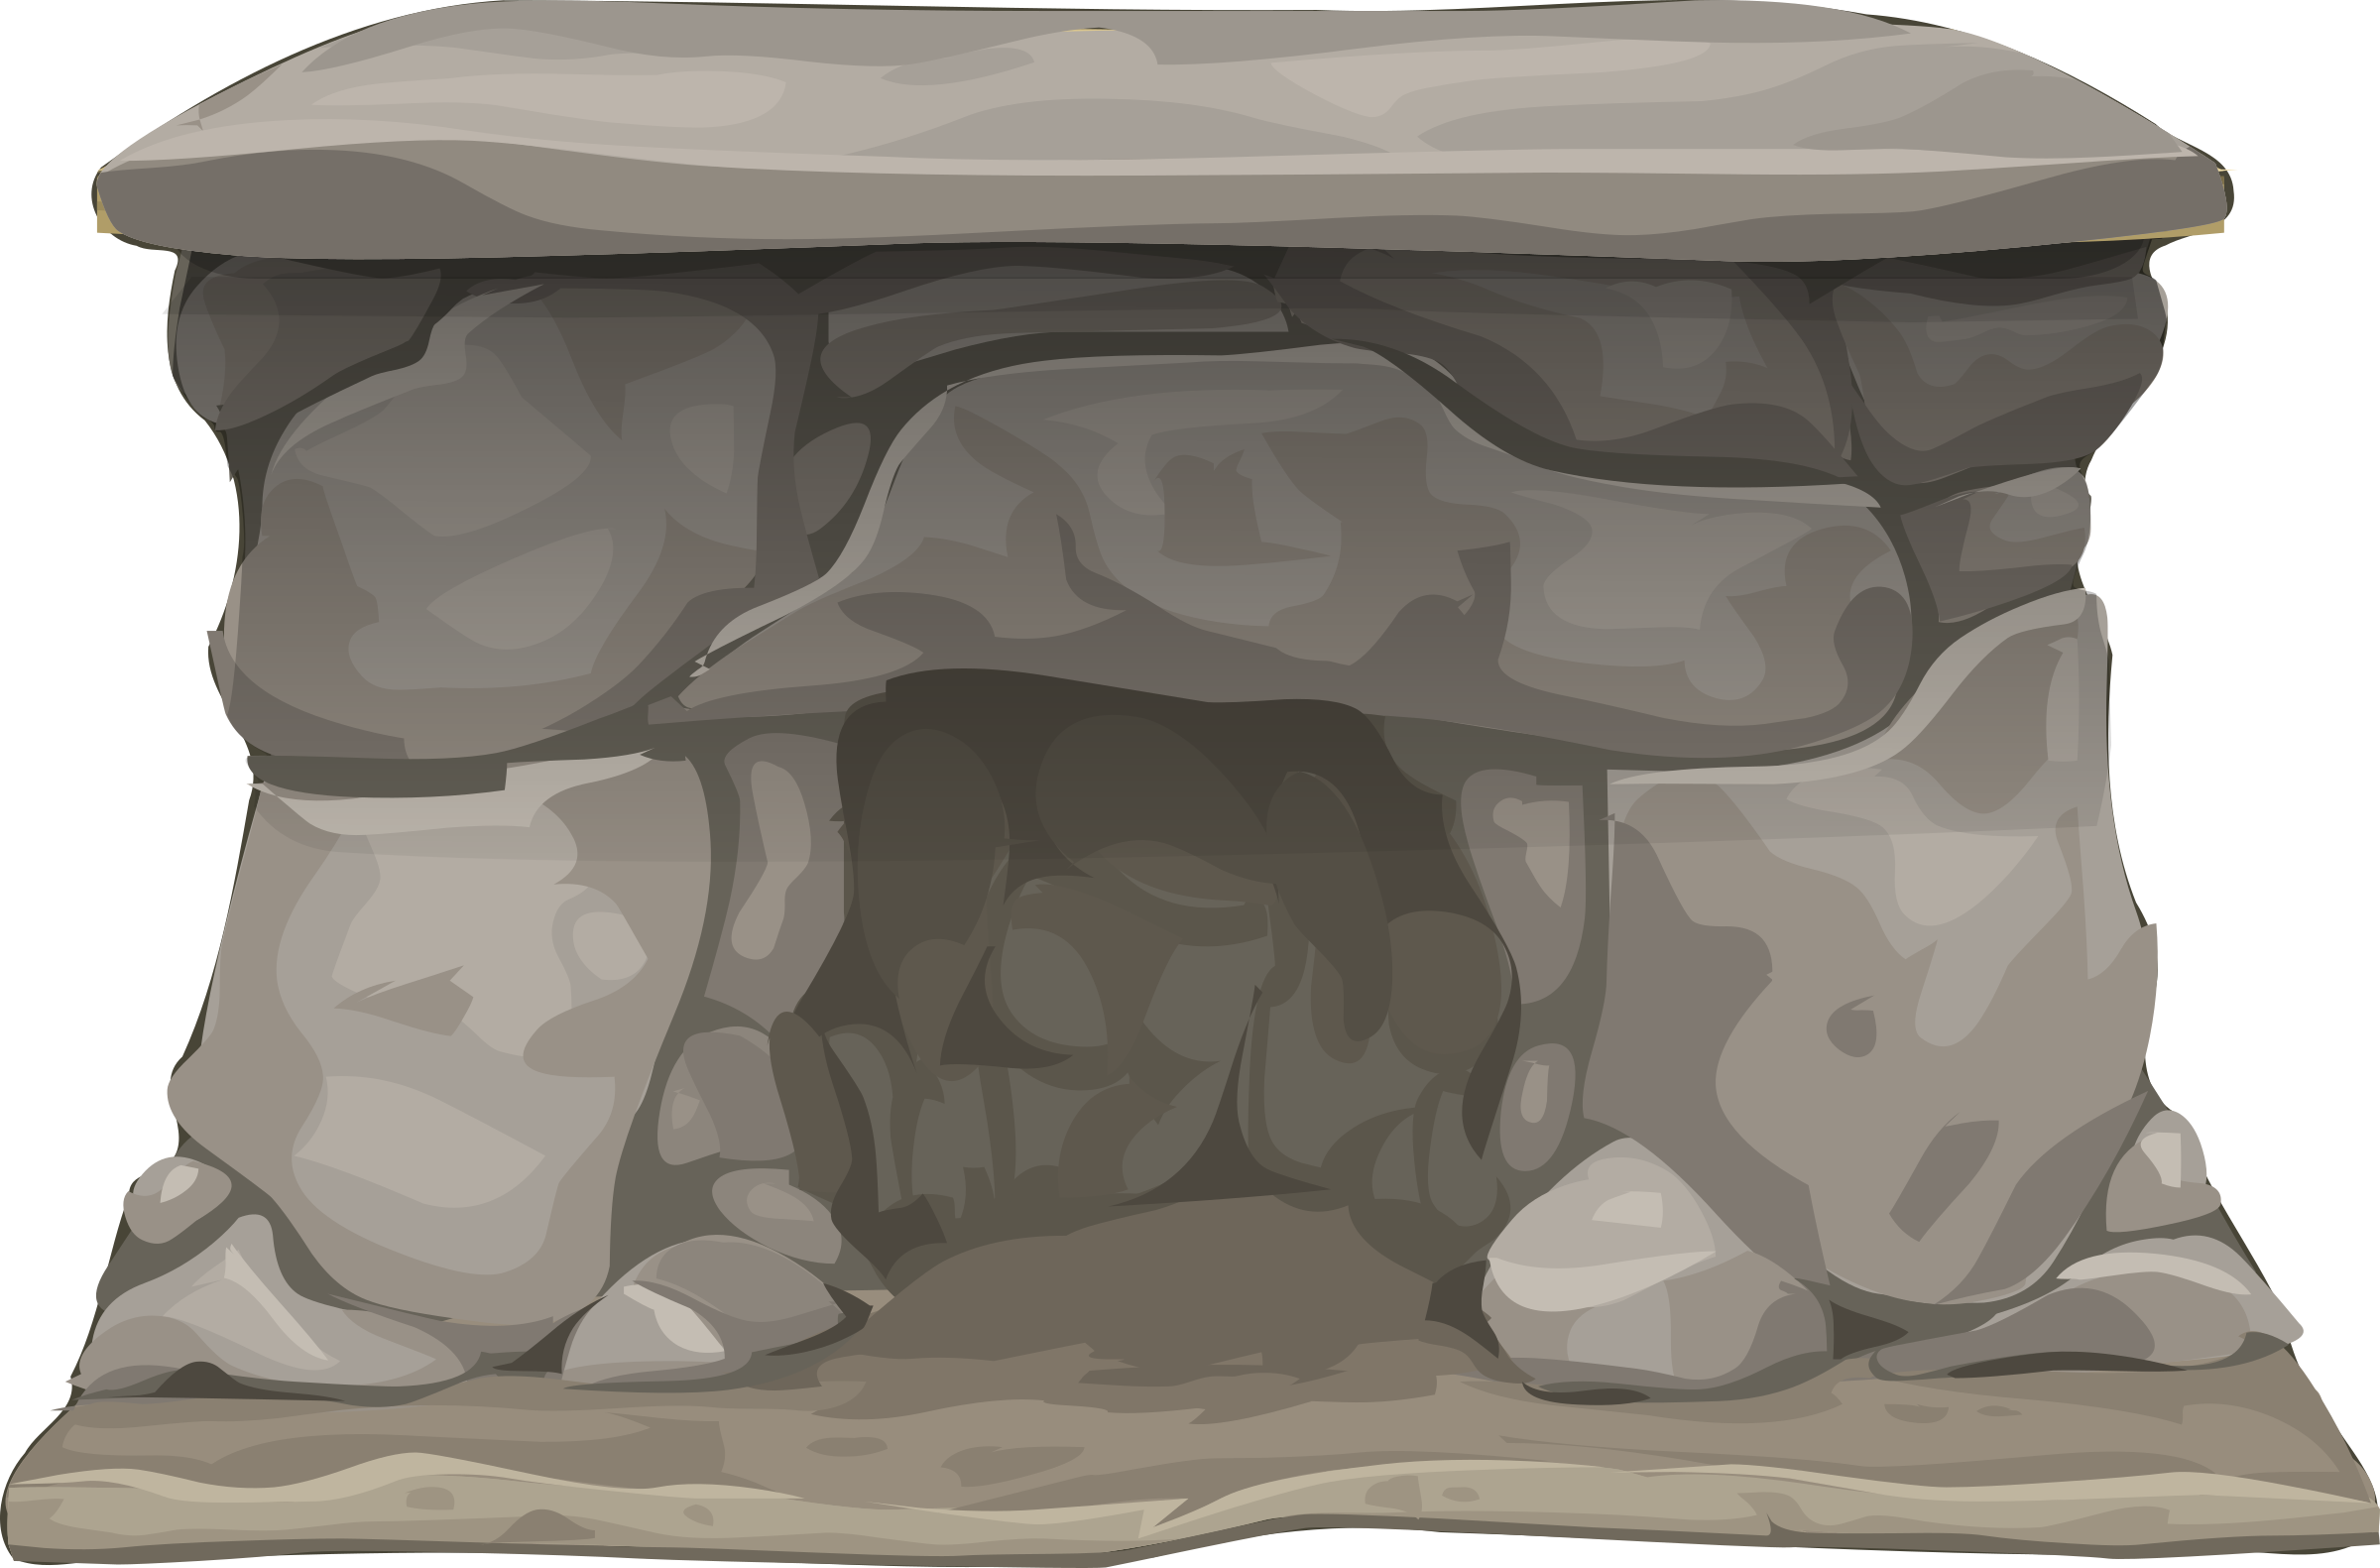 Stone from glitch big. Fireplace clipart old fashioned